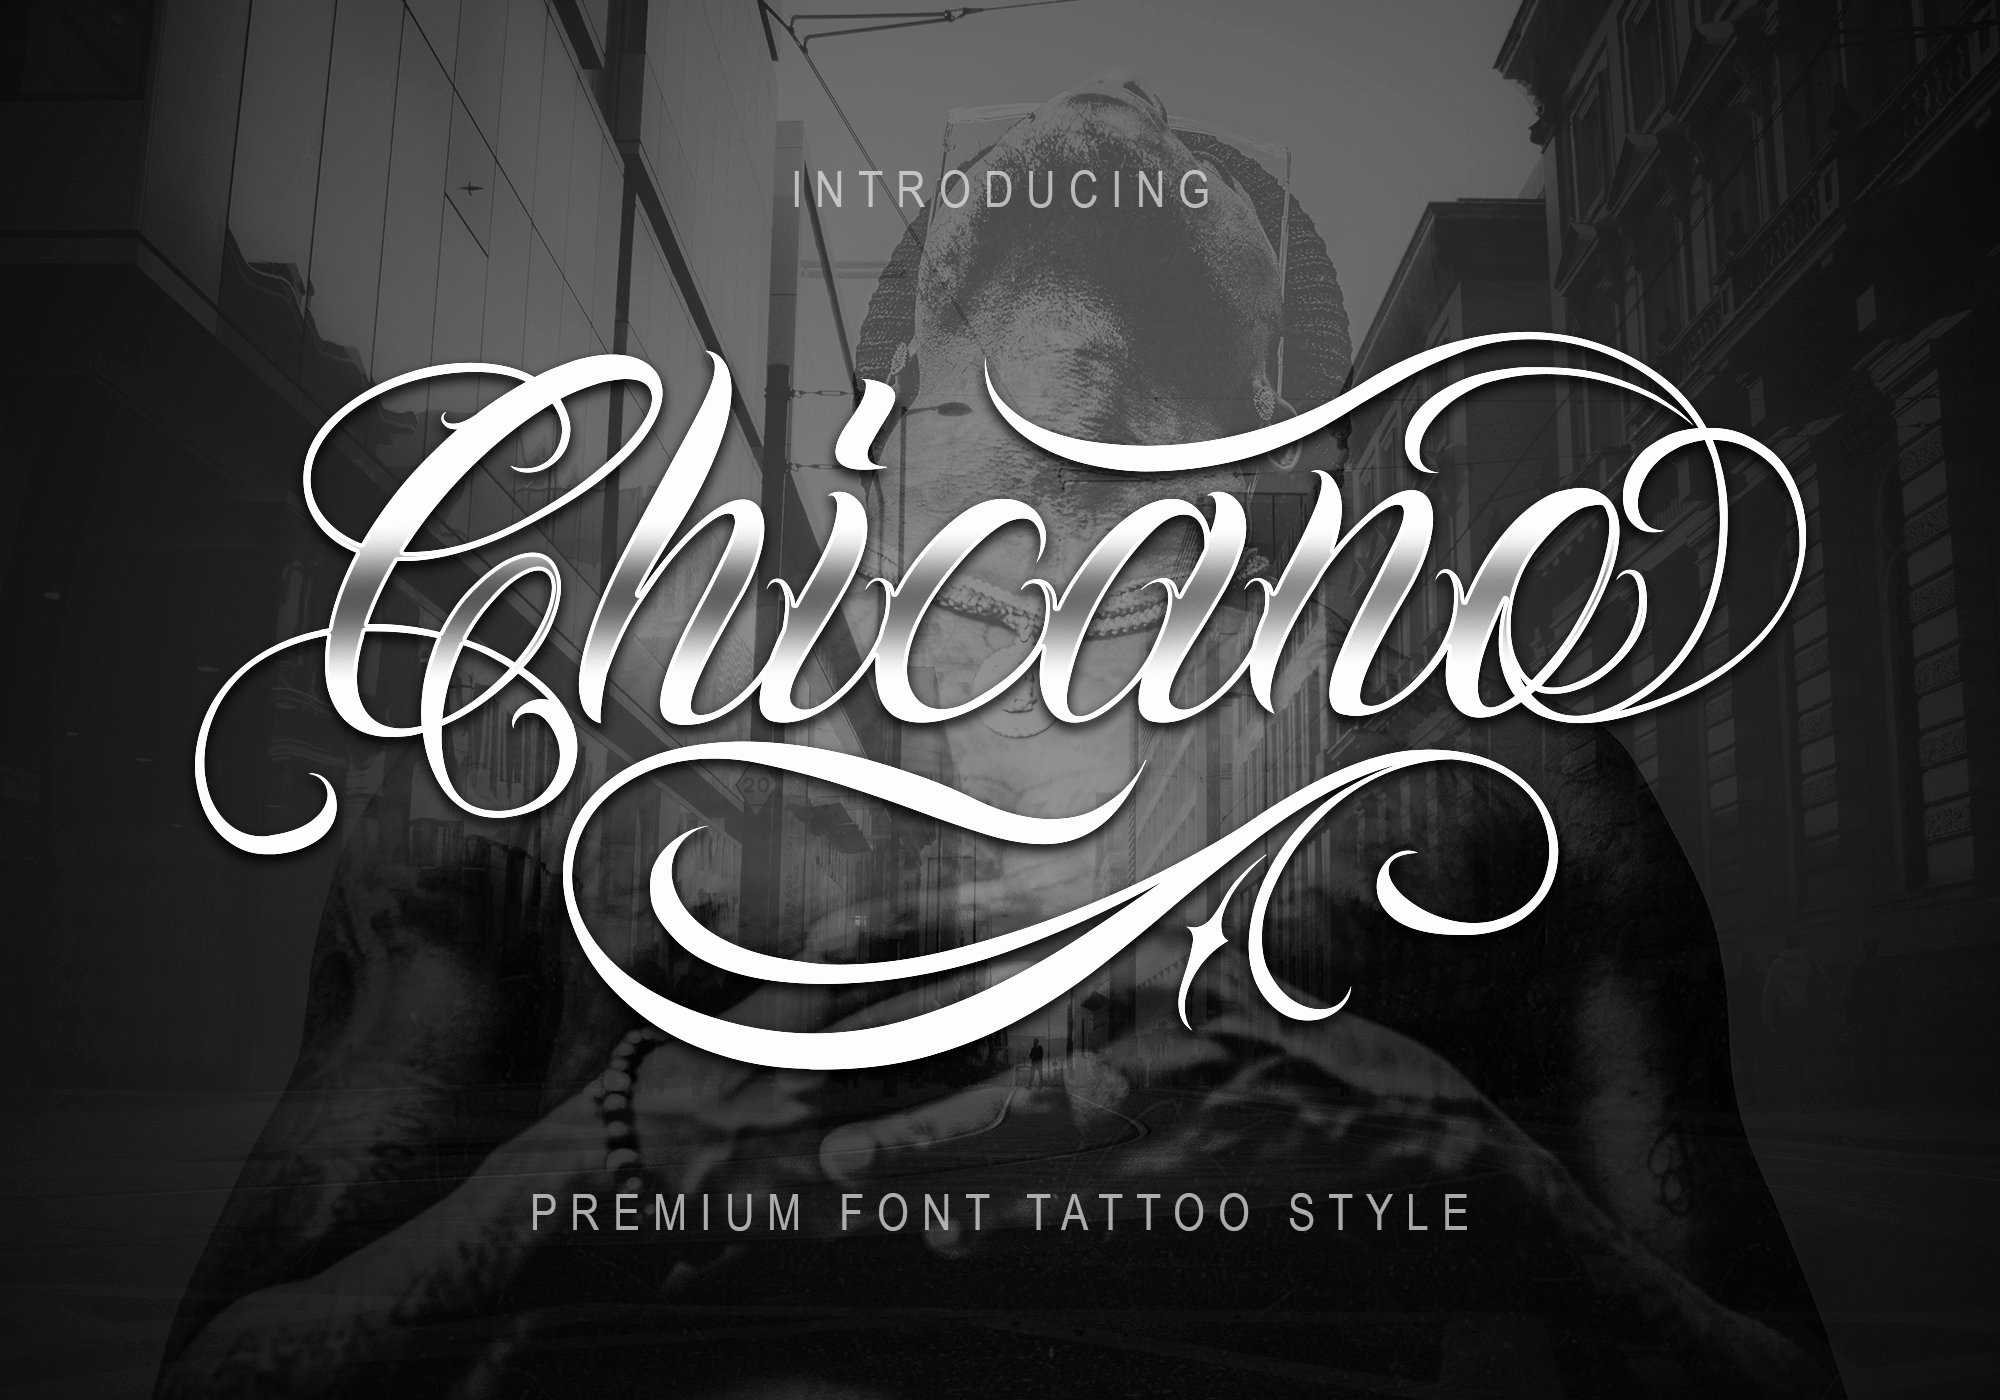 Calligraphy Font for Tattoo Inspirational Chicano Font